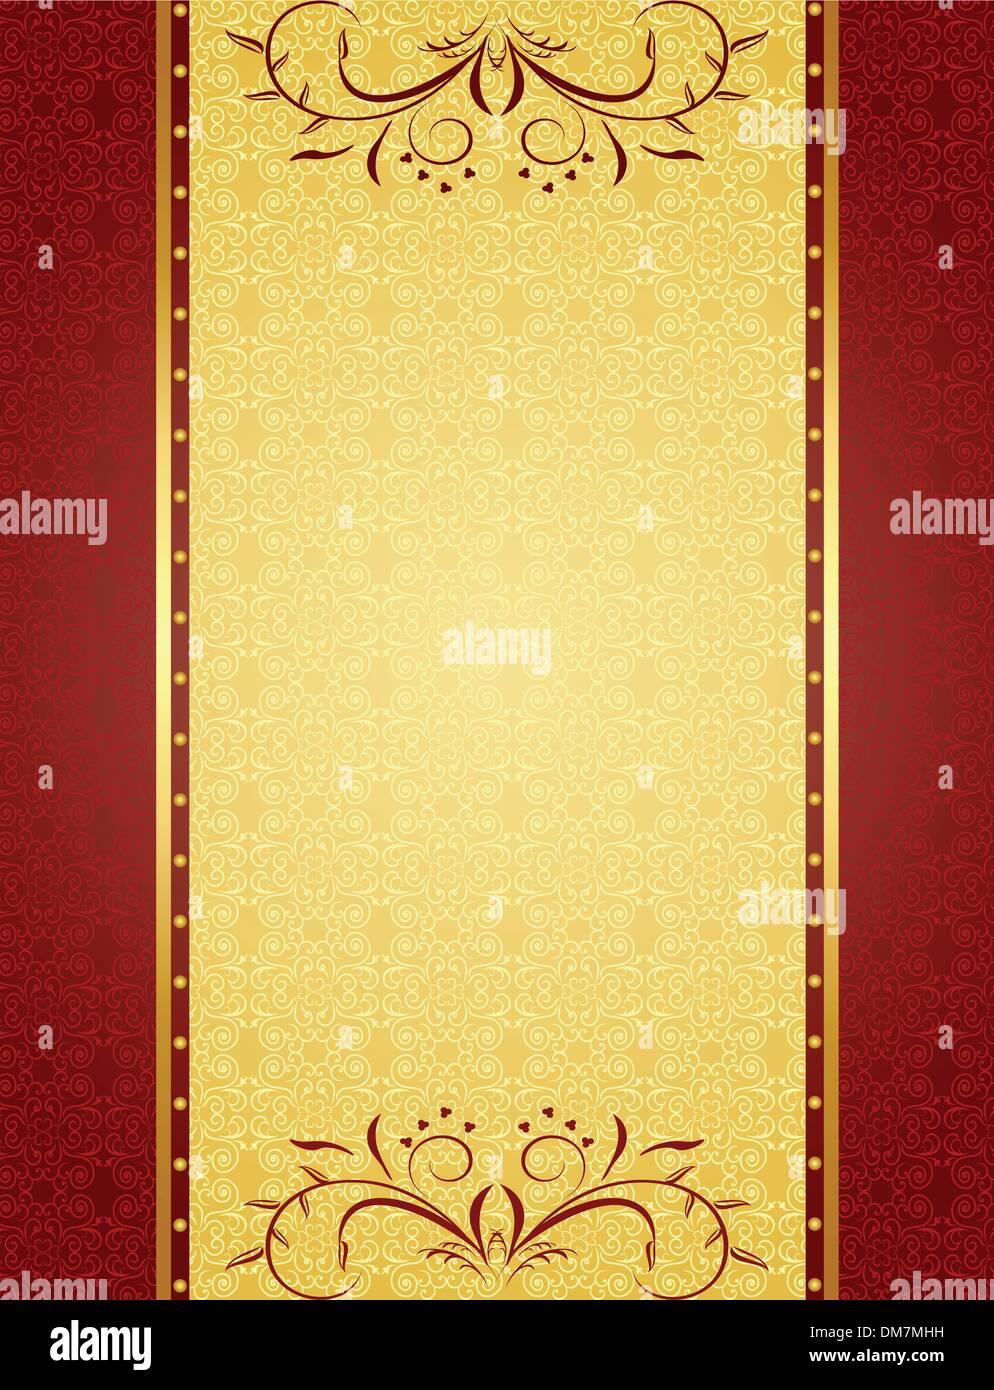 https www alamy com gold background for design of cards and invitation image64094061 html